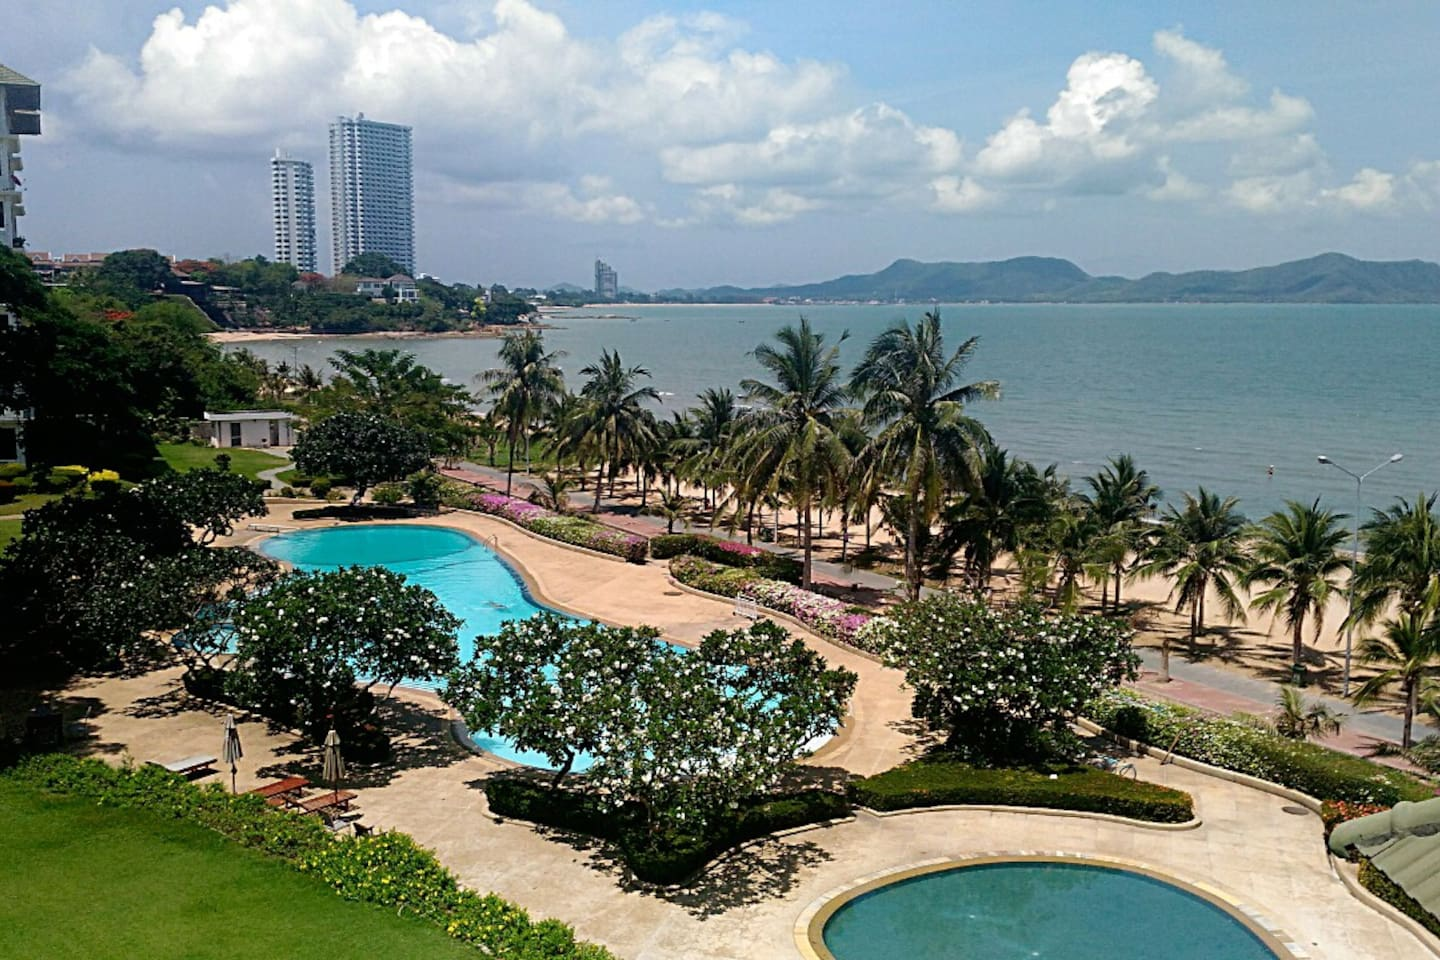 Beachfront apartment with private access to one of the most beautiful sunset beach in Pattaya